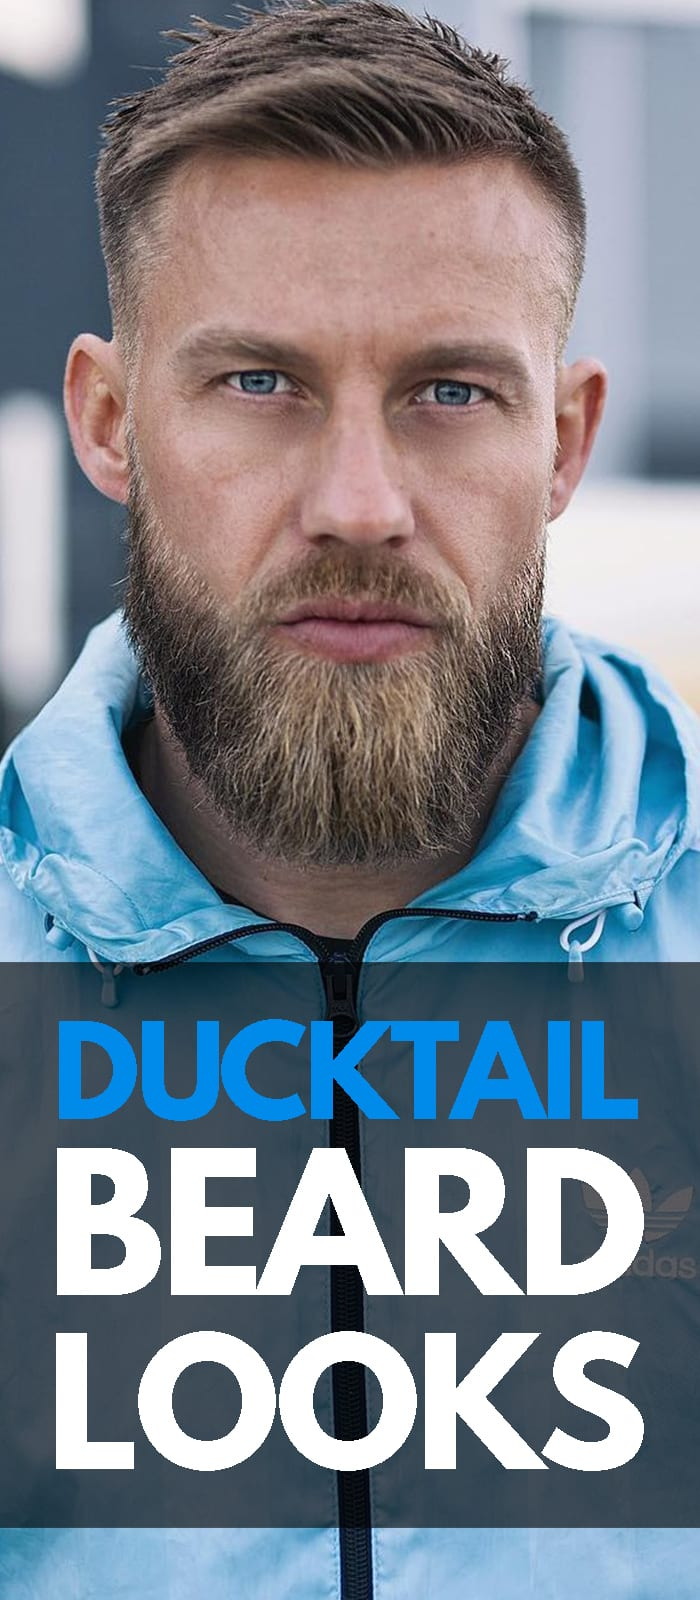 Ducktail Beard Look